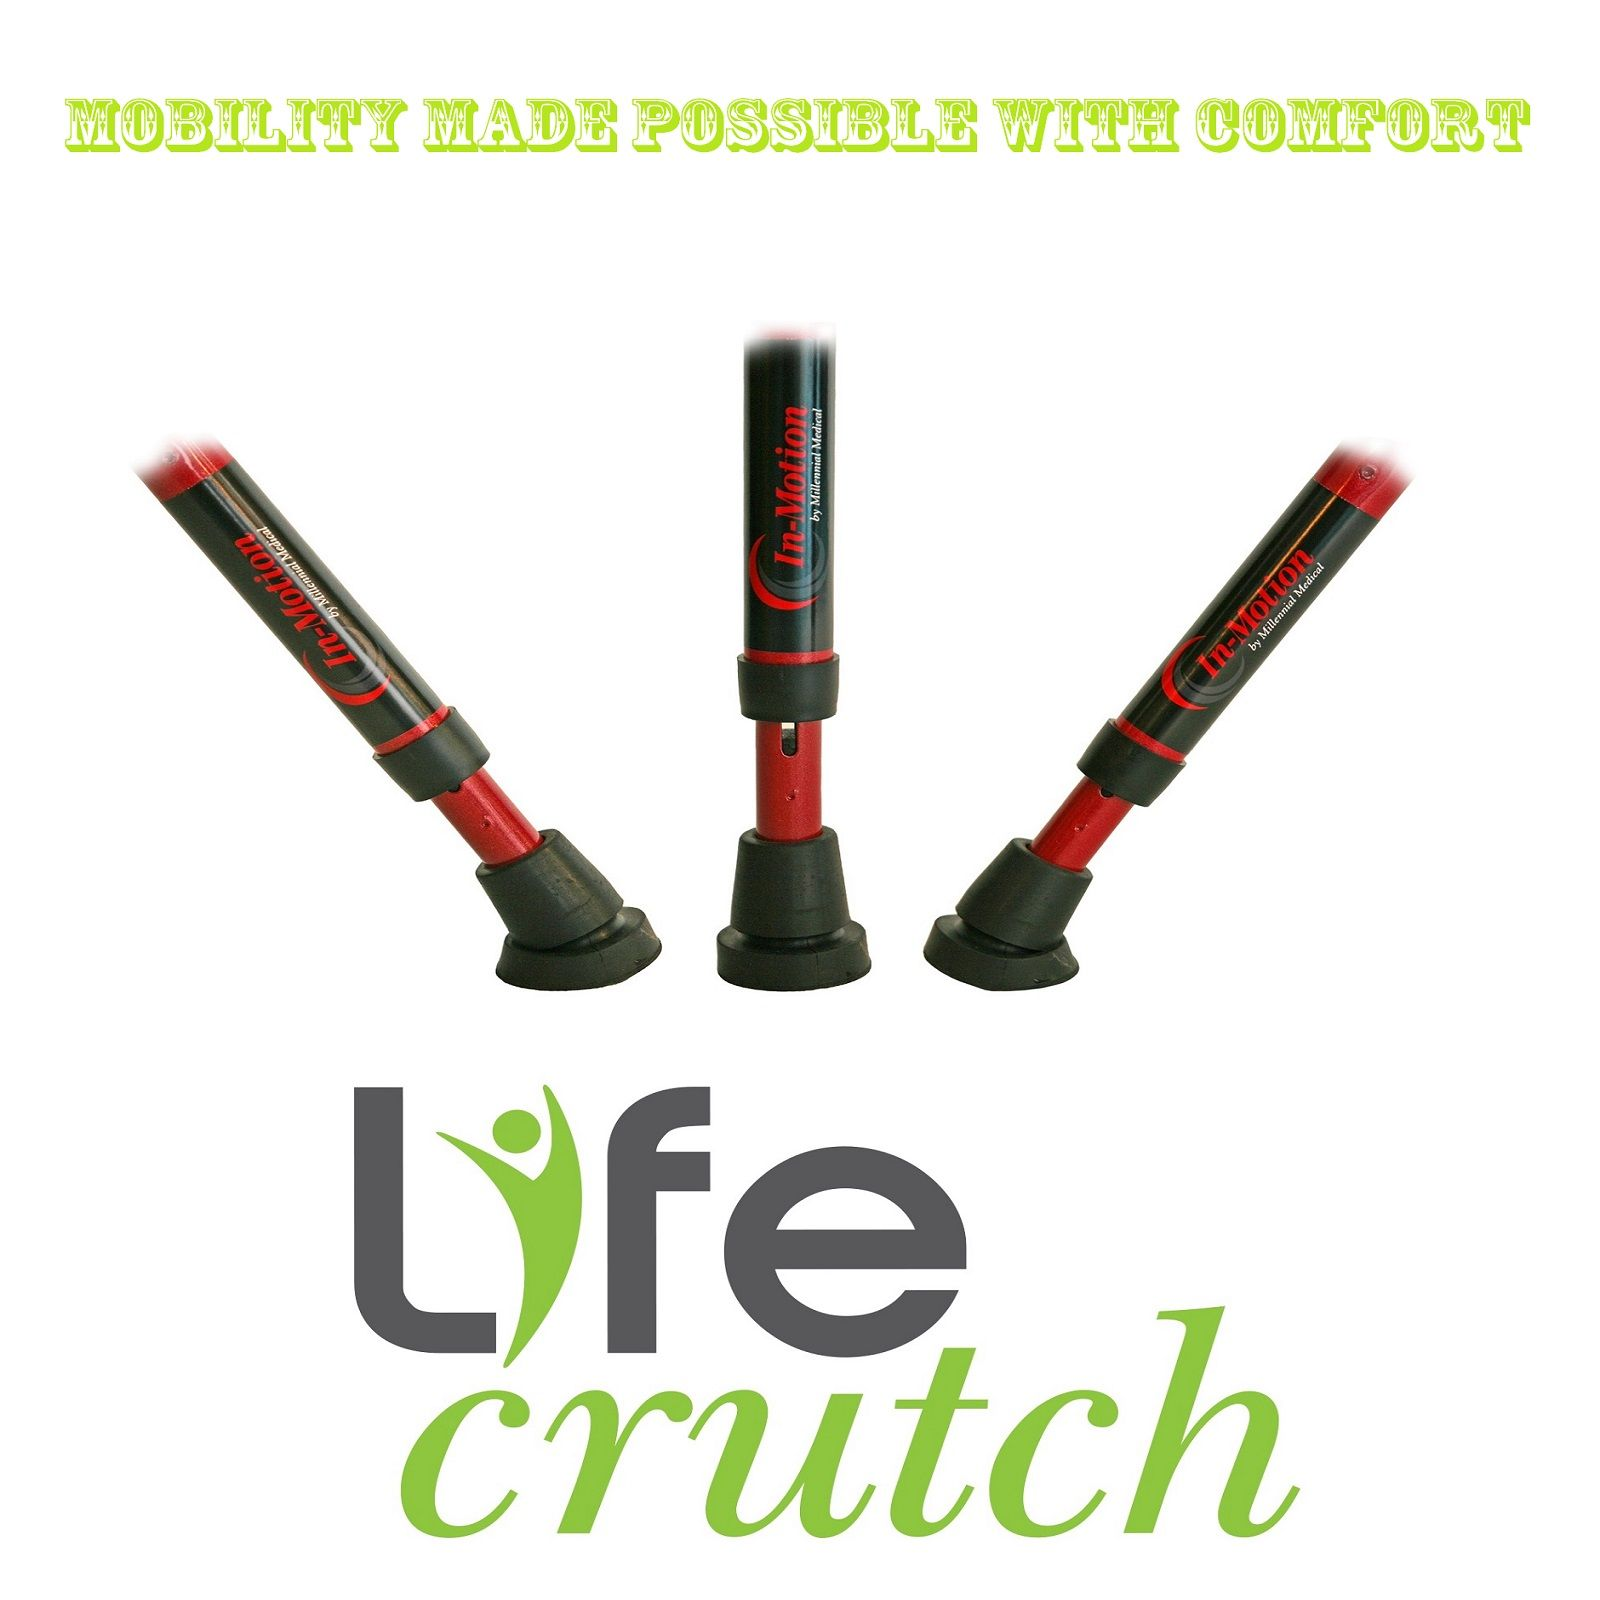 No Mobility Makes Everyday Living Challenging And We Are Committed To Make It Possible With Comfort And Durability Crutches Crutches Accessories Crutch Pad